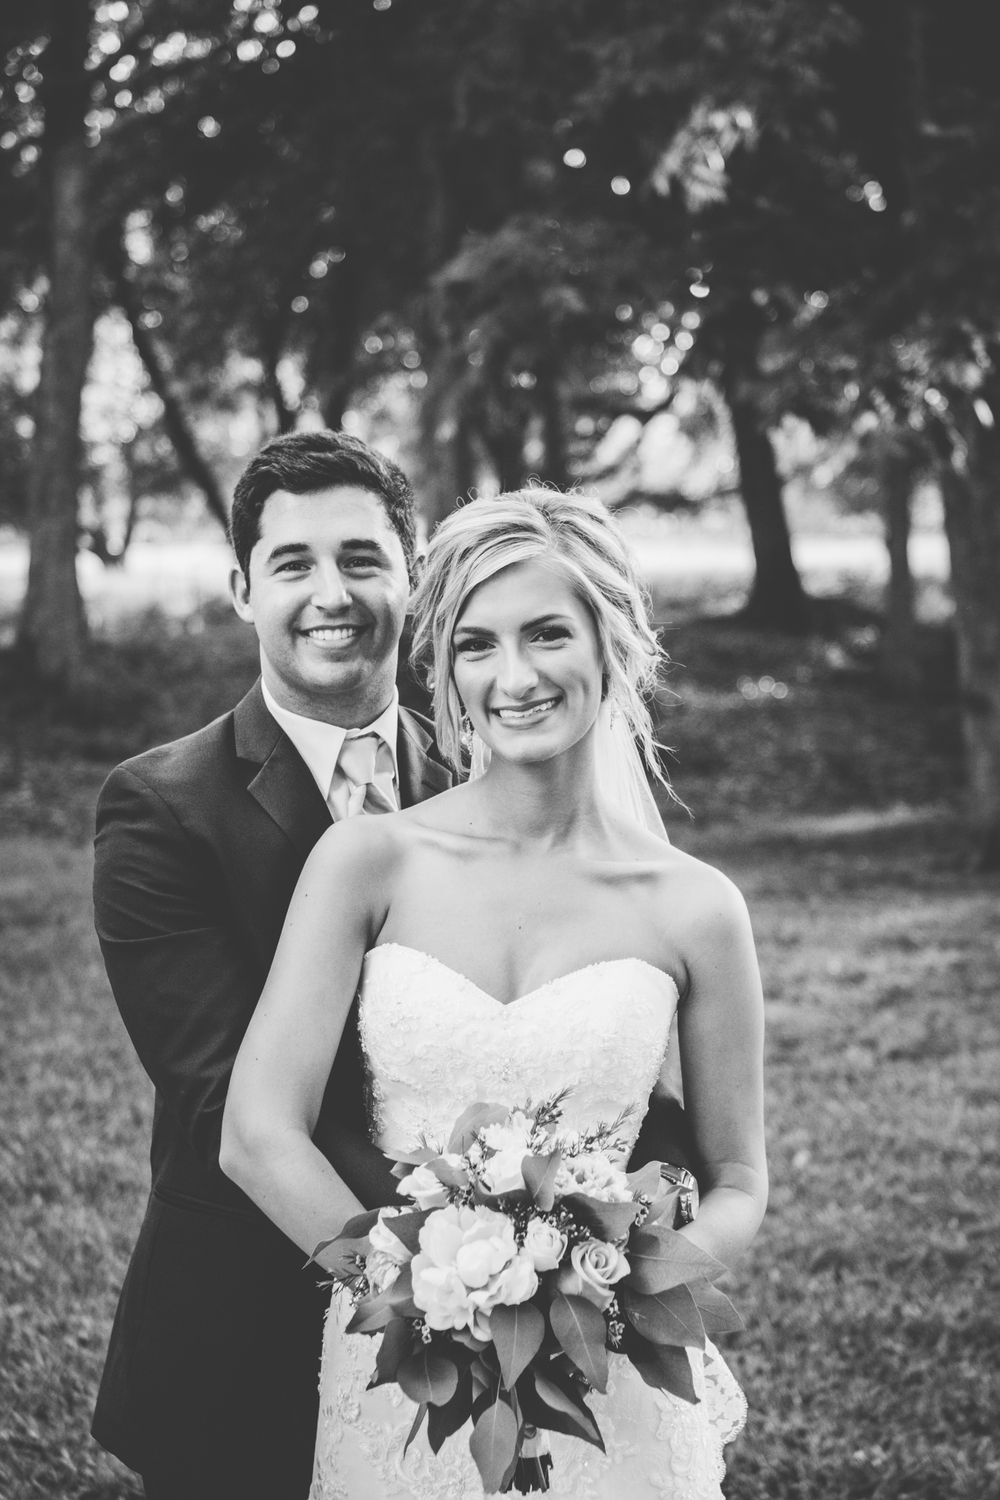 Josh + Alora | Classic Denham Springs Wedding. Photos by Christi Childs with The Picture People LA photography Baton Rouge, Louisiana at the oakleigh lodge